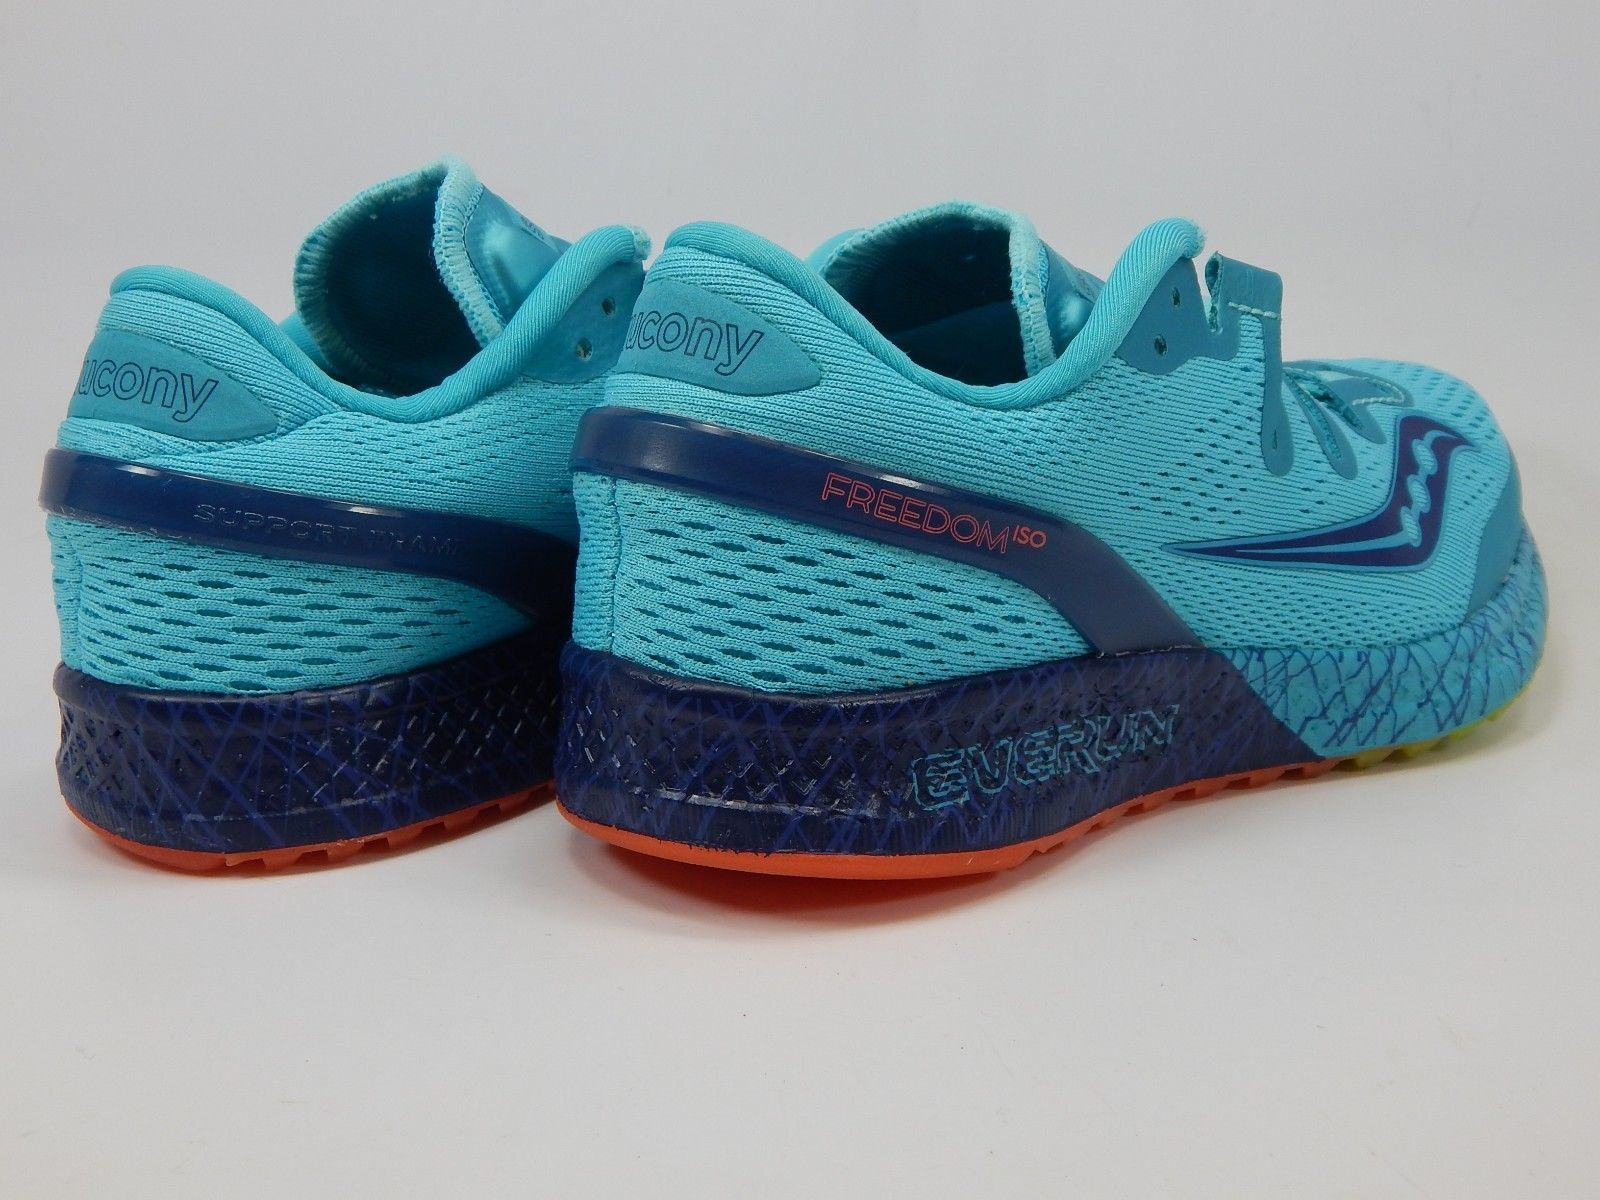 642a4bf3 Saucony Freedom ISO Size 7.5 M (B) EU 38.5 and 50 similar items